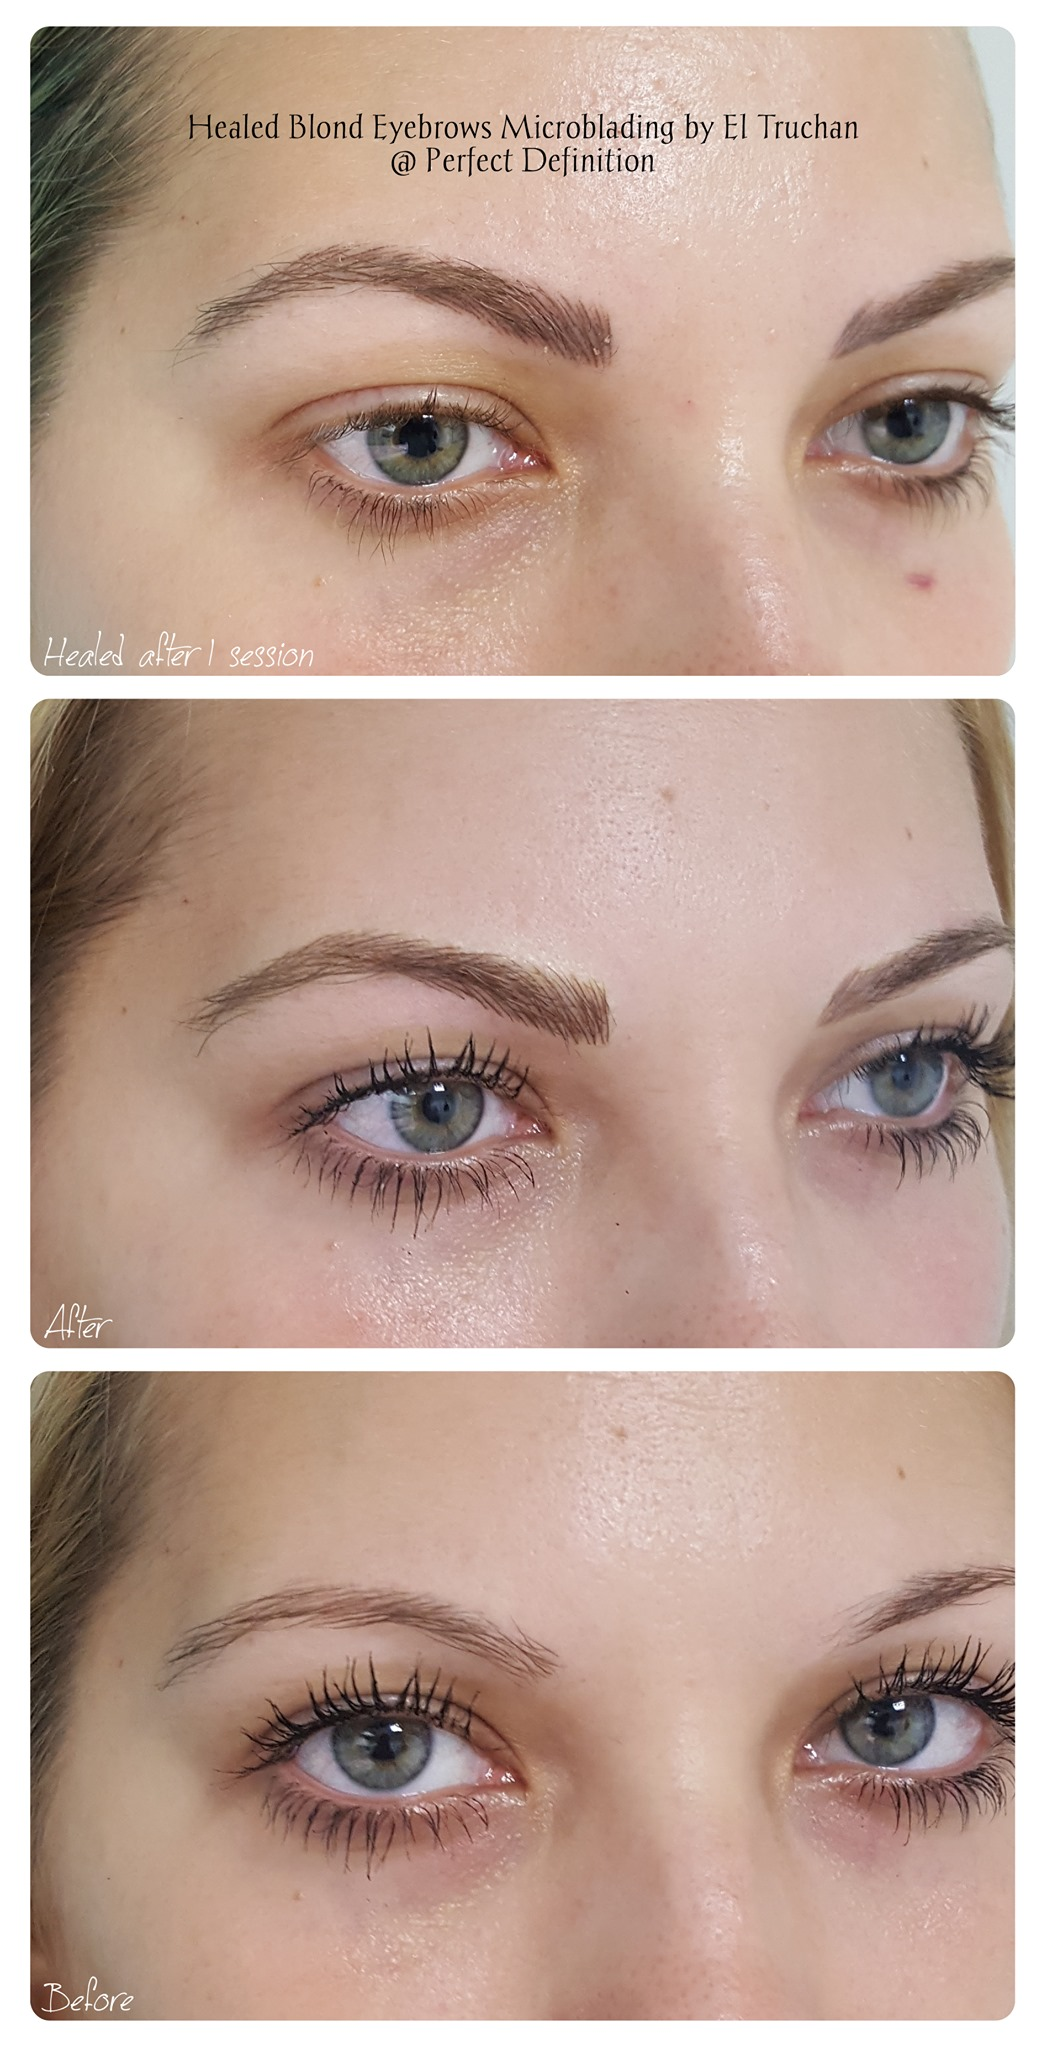 Healed Blonde Eyebrows Microblading by E